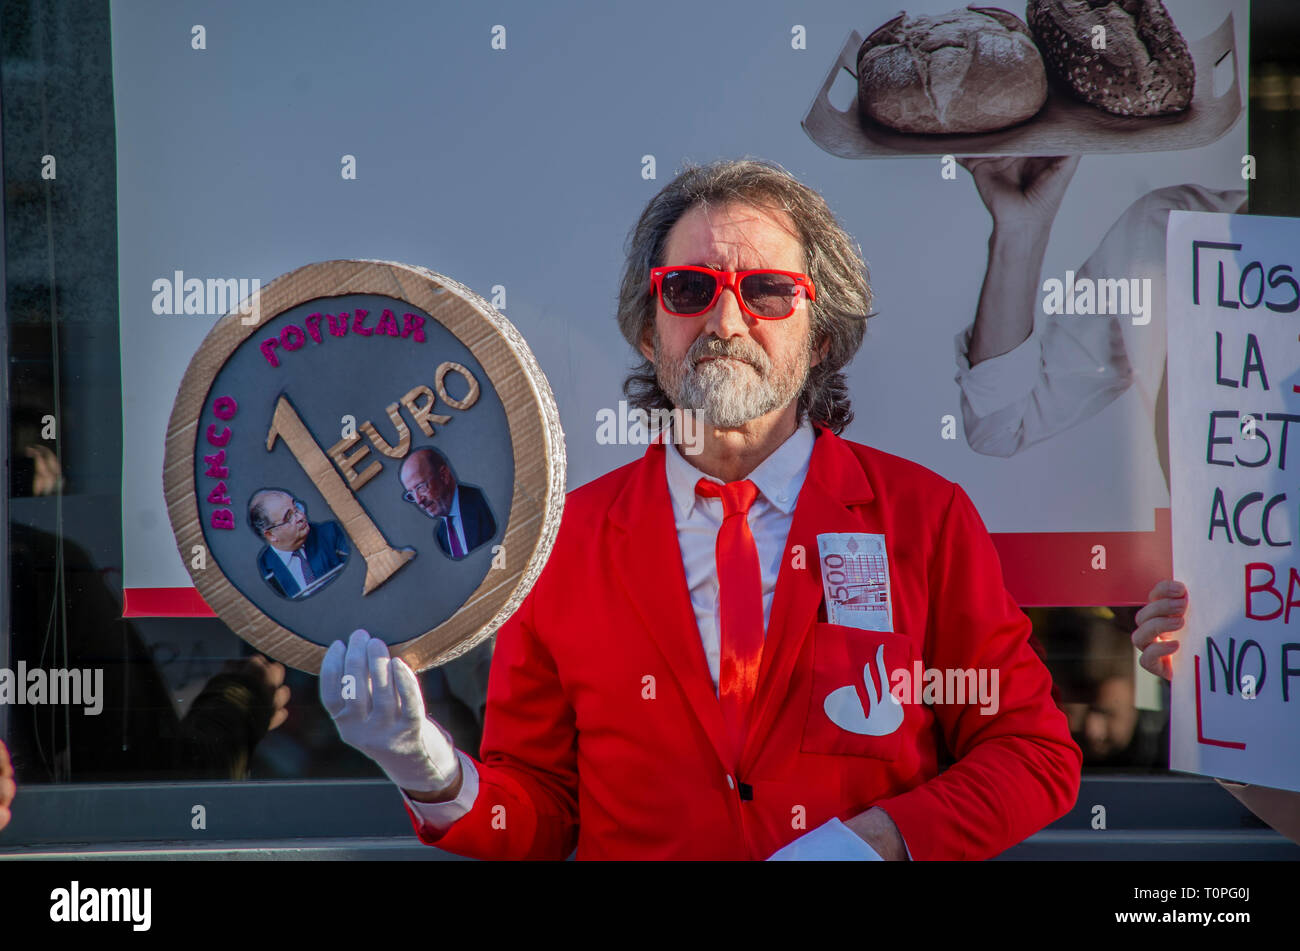 """Madrid, Spain. 21st Mar 2019. Scammed shareholders protested in front of the bank """"Banco Popular"""" part of Santander Group in Madrid. Some 300 000 shareholdres have been left with no money in their accounts.  In the picture, a man disguised as a bank worker holding a huge euro coin that says """"Banco Popular"""" Credit: Lora Grigorova/Alamy Live News - Stock Image"""